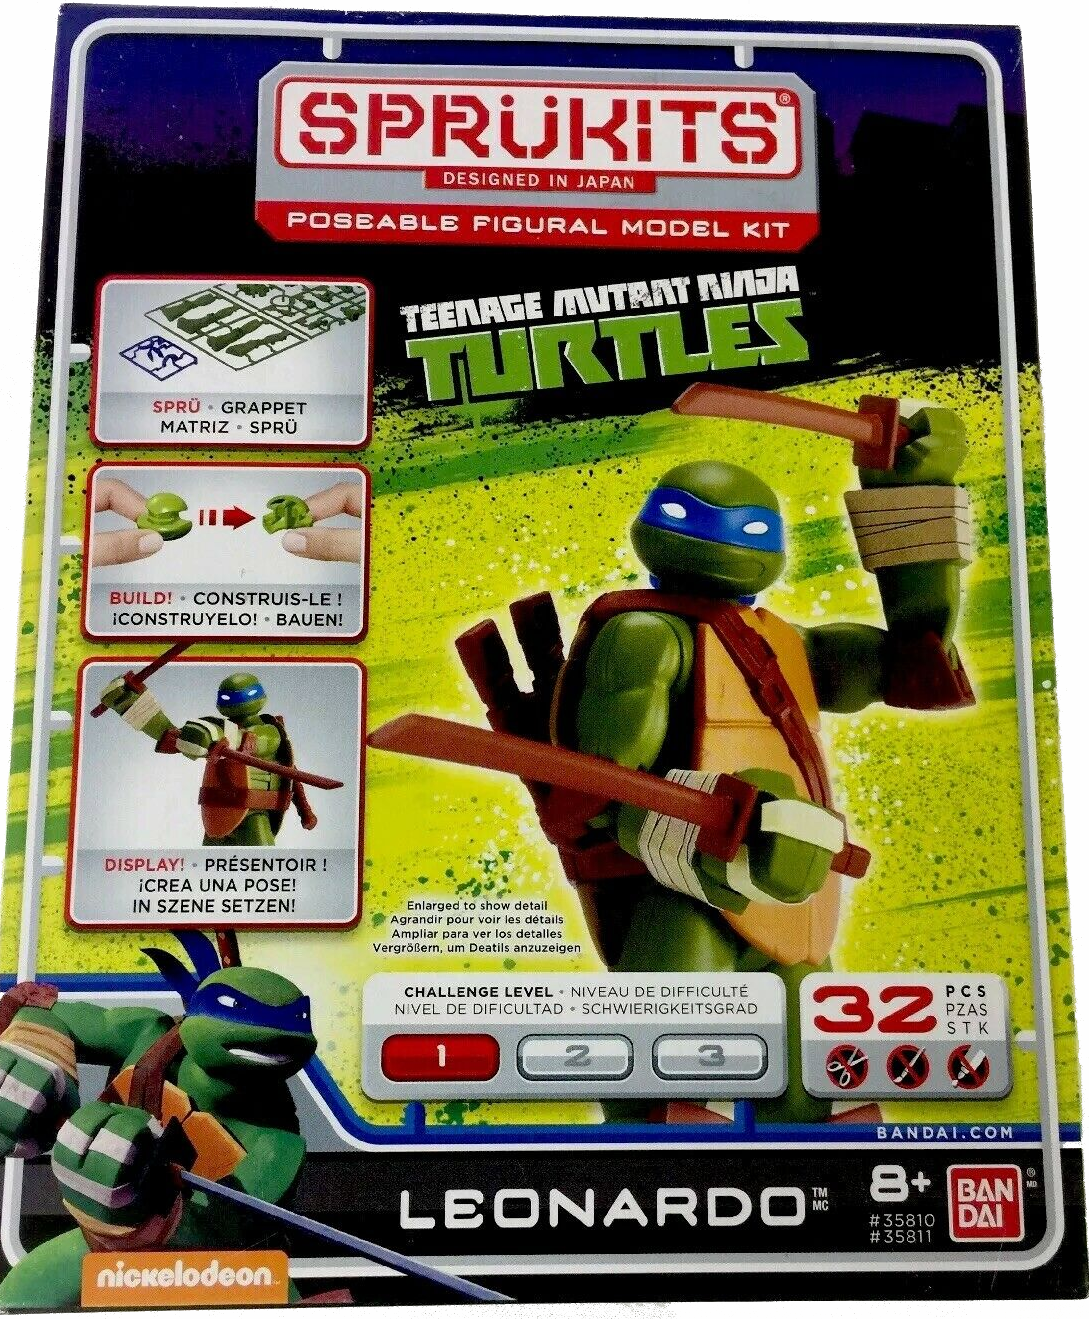 Bandai Sprukits Teenage Mutant Ninja Turtles Leonardo Model Kit